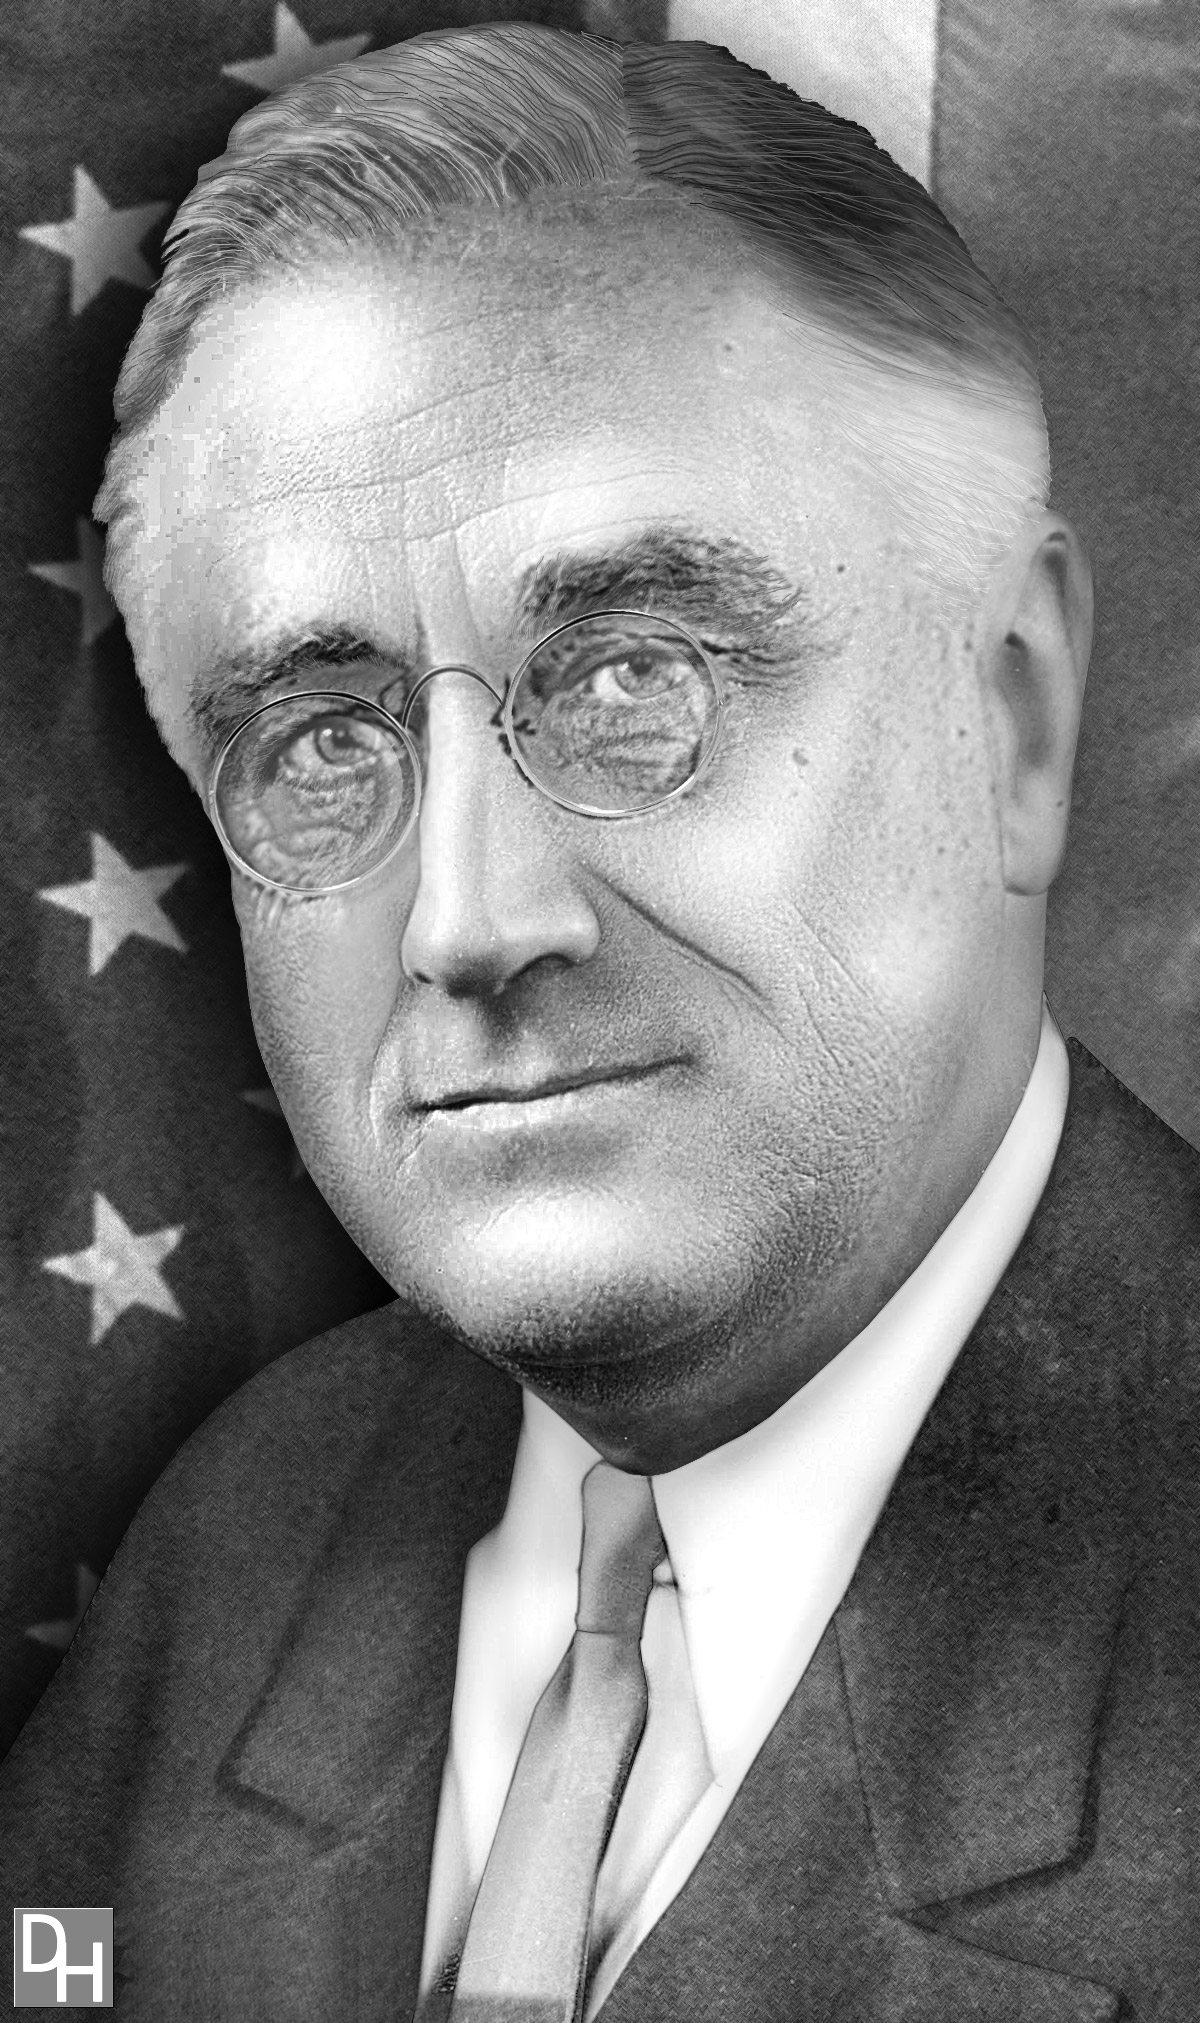 an analysis of the administration of franklin d roosevelt The administration adopted a policy of moderate currency inflation to start an upward the increasing pressures of the great depression caused president roosevelt to back a new set of economic and social measures william e franklin d roosevelt and the new deal harper and.